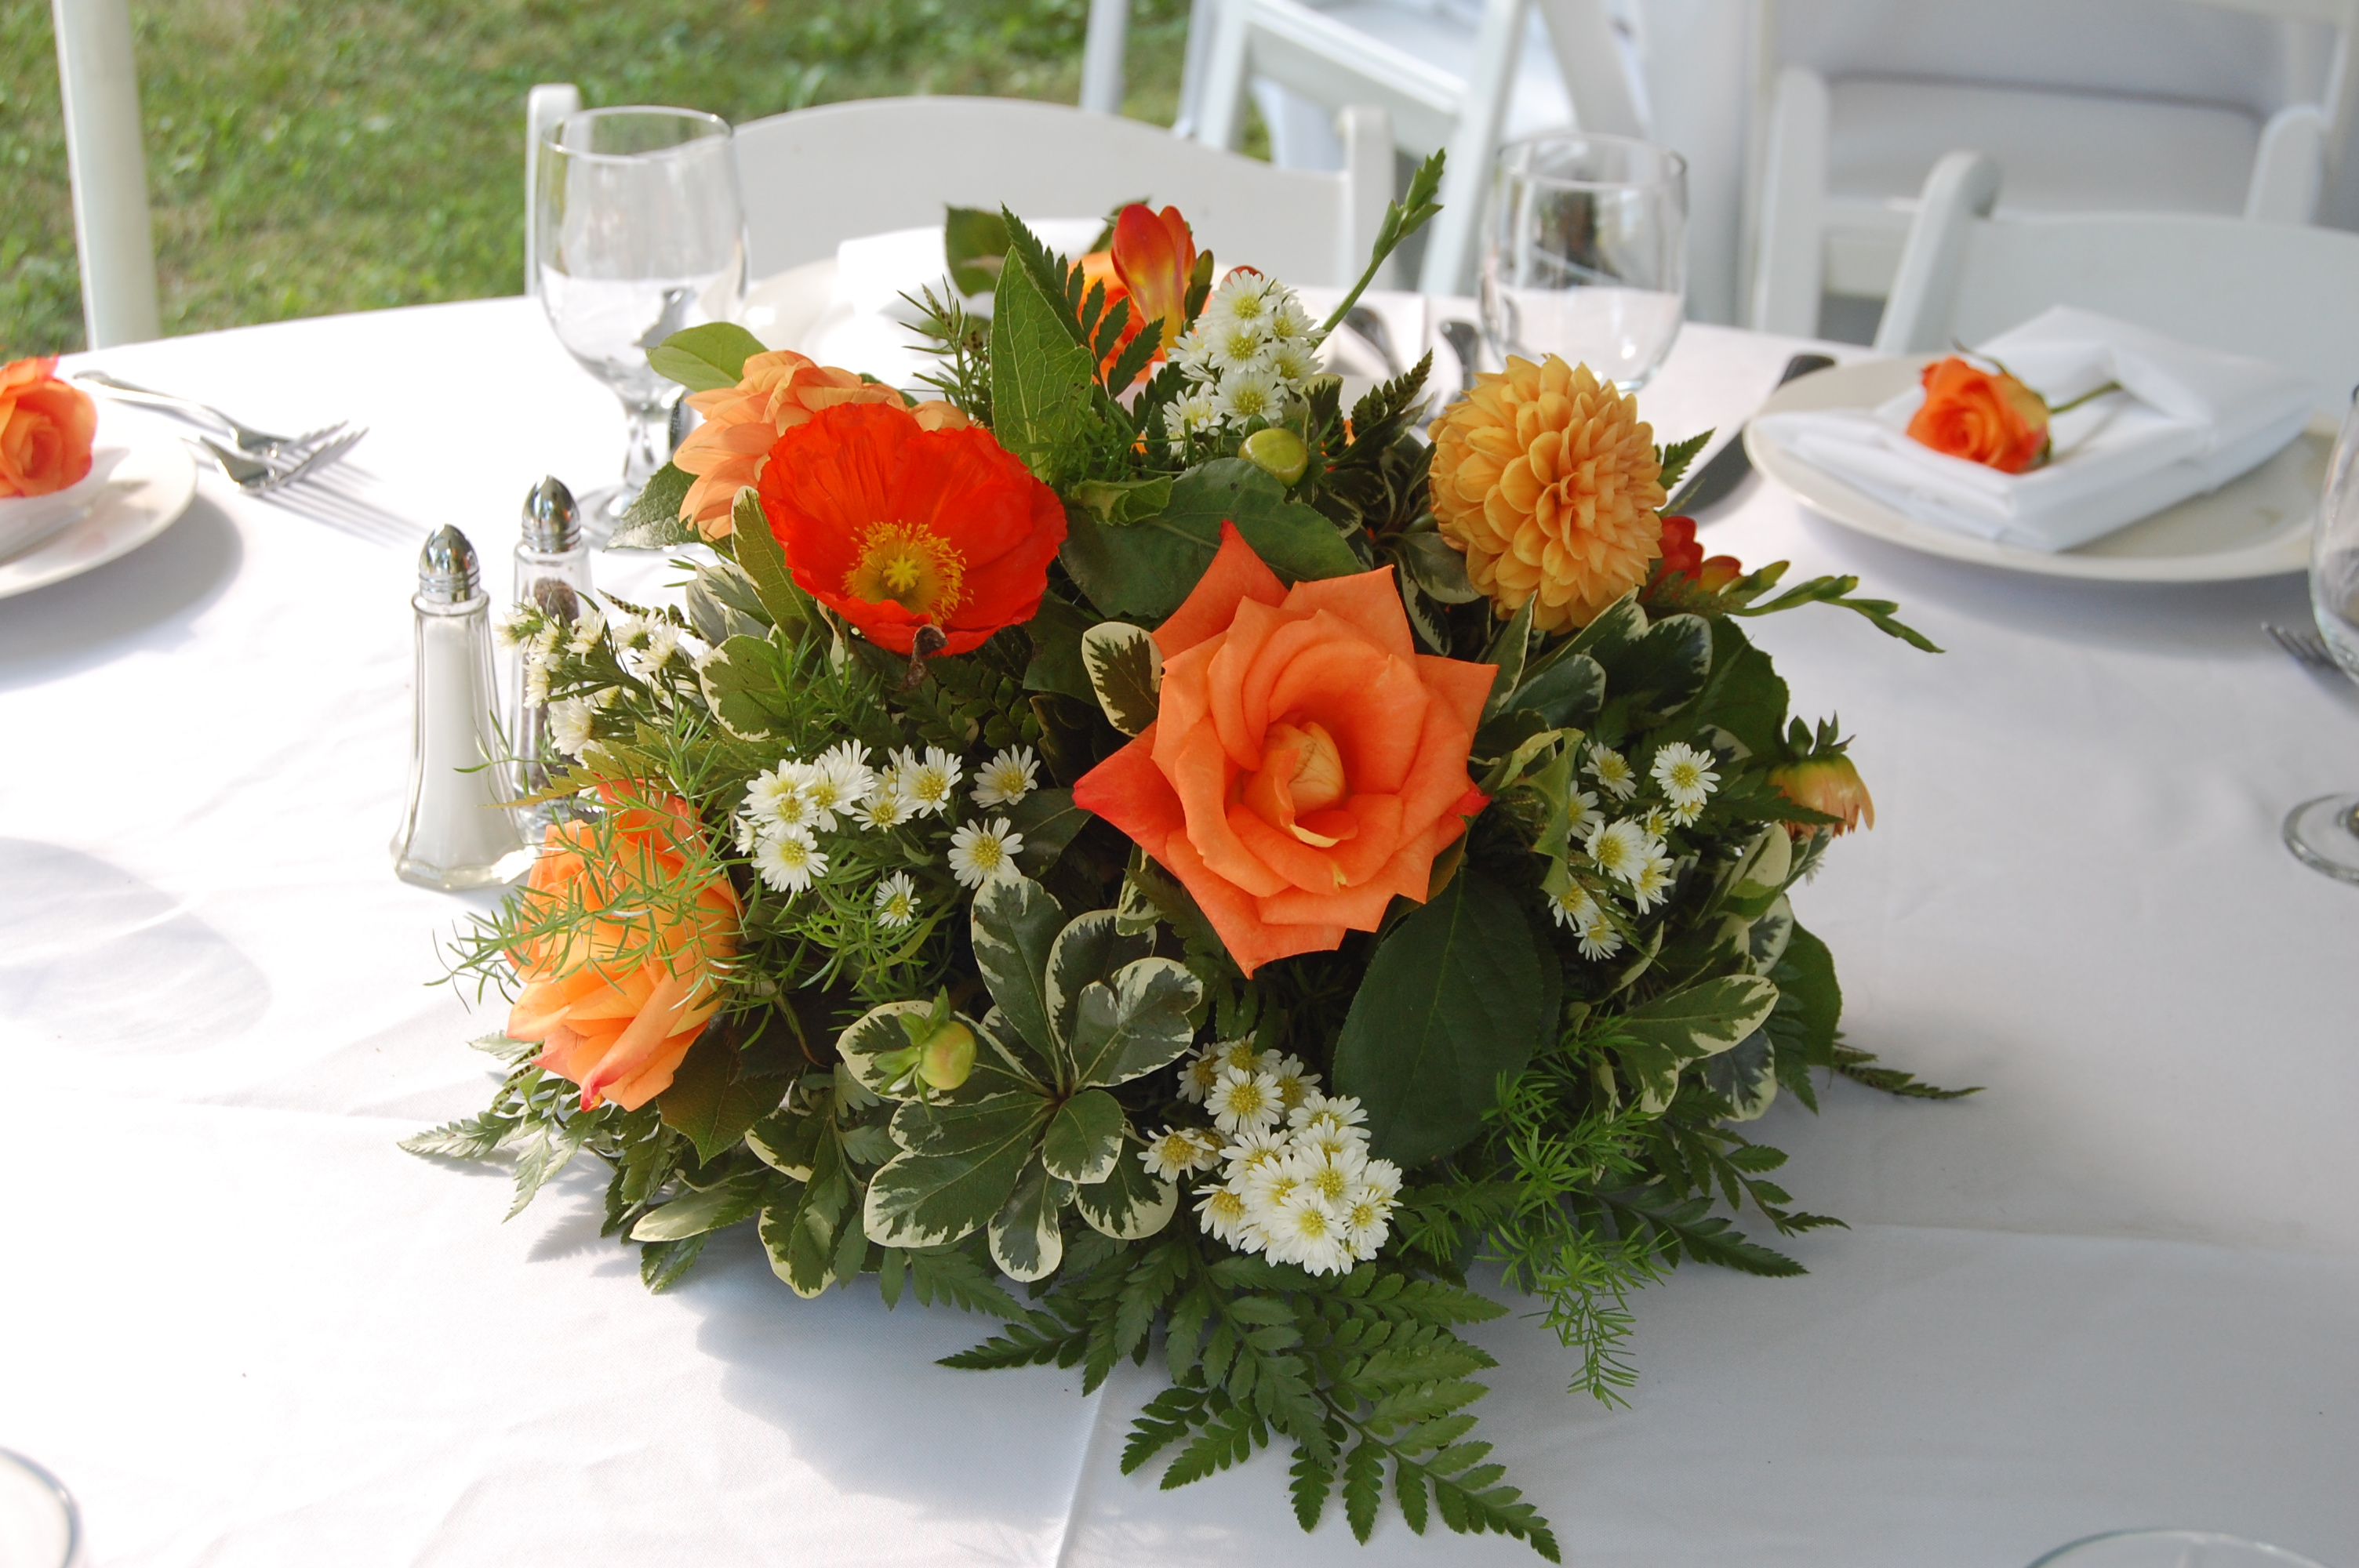 Centerpiece of roses, dahlias, greens